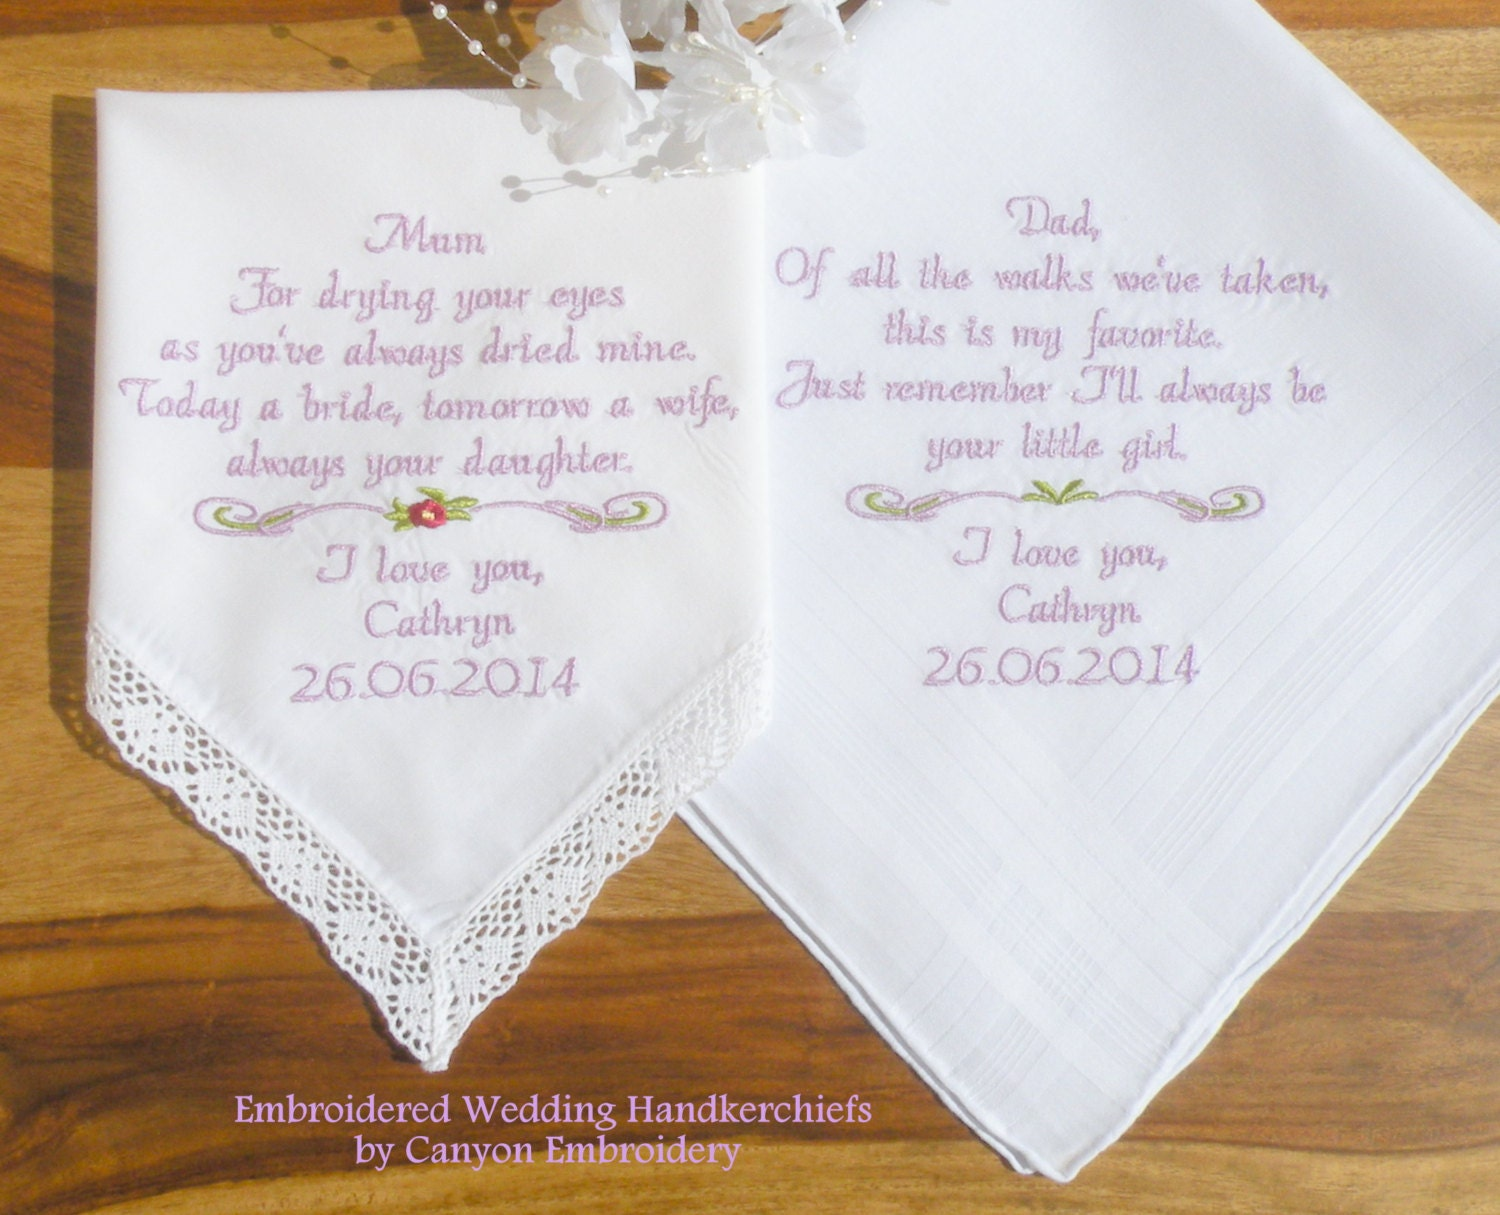 Wedding Gift For Mom And Dad : Wedding Gift for Mom and Dad Embroidered by CanyonEmbroidery